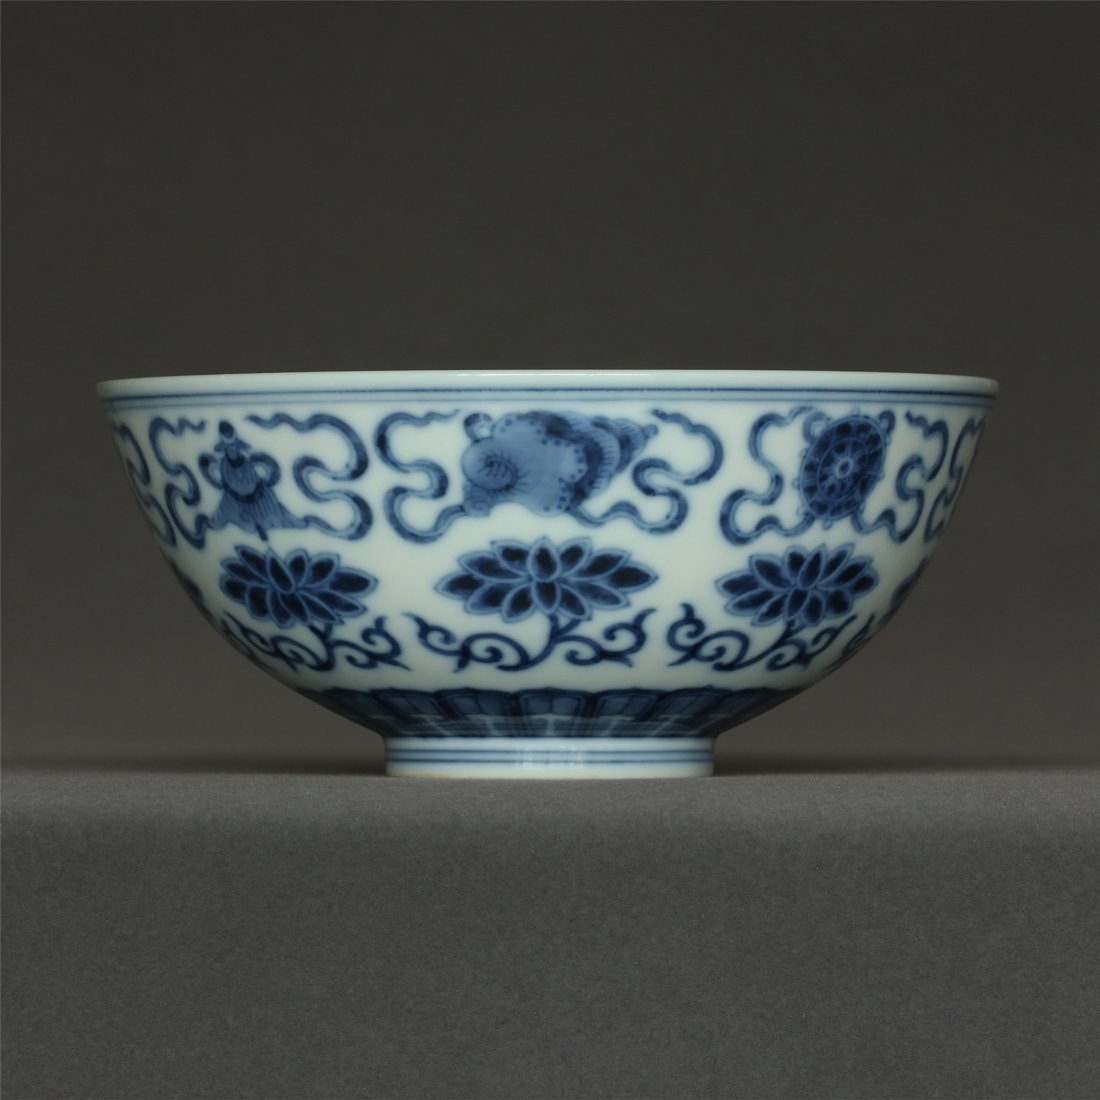 Blue and white porcelain bowl of Qing Dynasty GuangXu